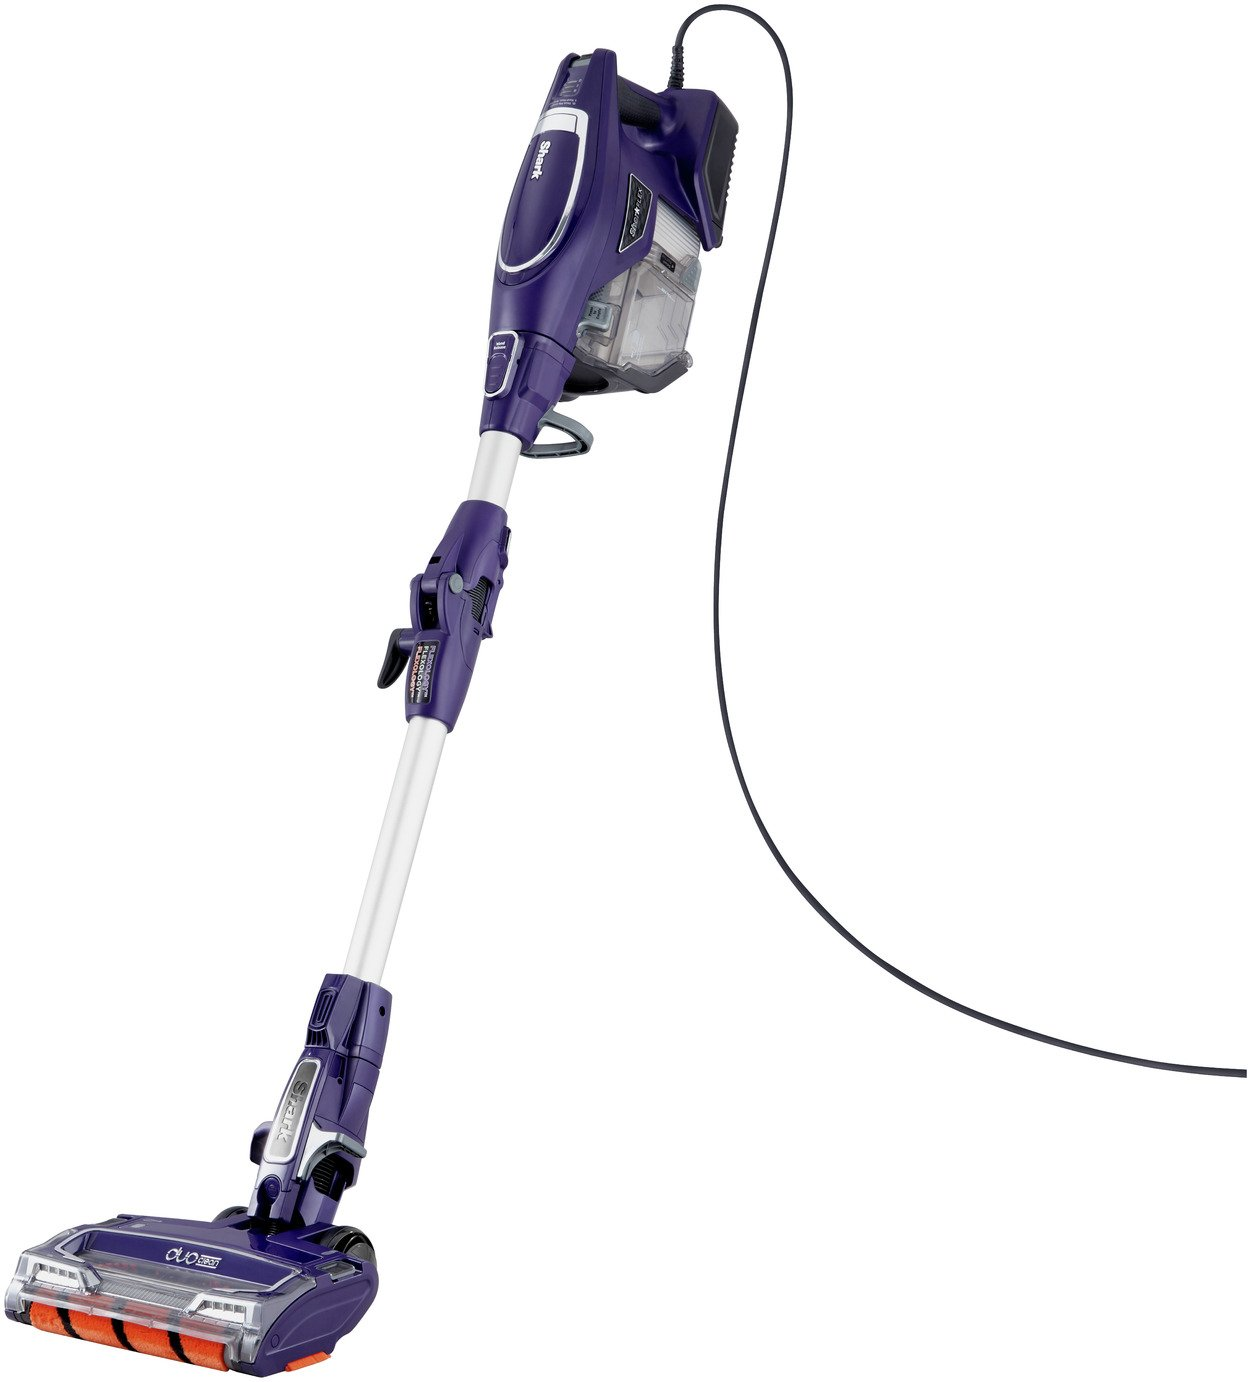 Vacuum Cleaners Page 1 Argos Price Tracker